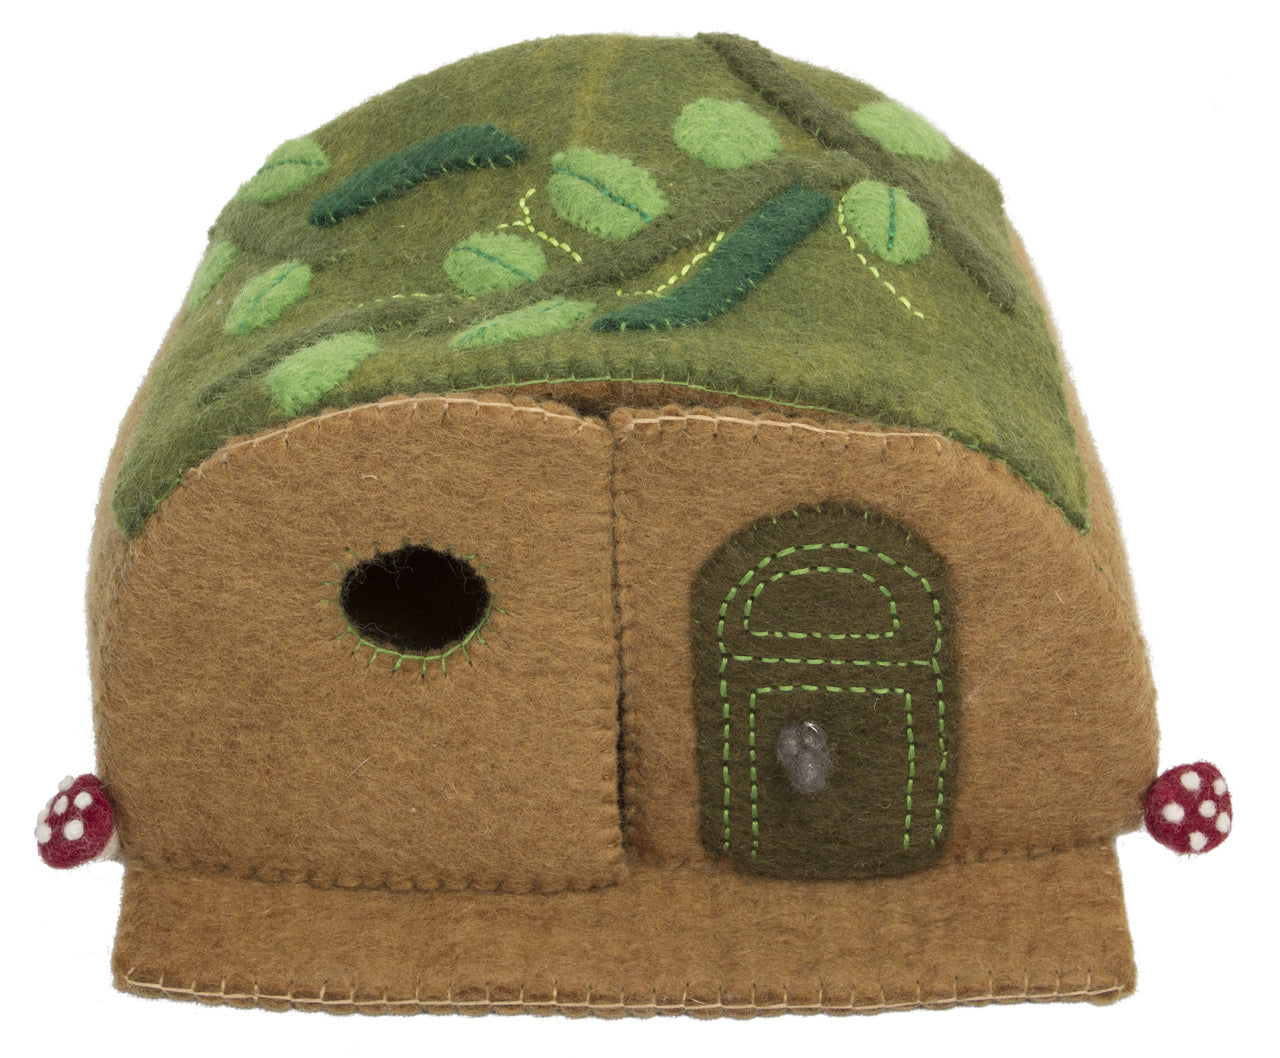 Papoose felt woodland mouse house